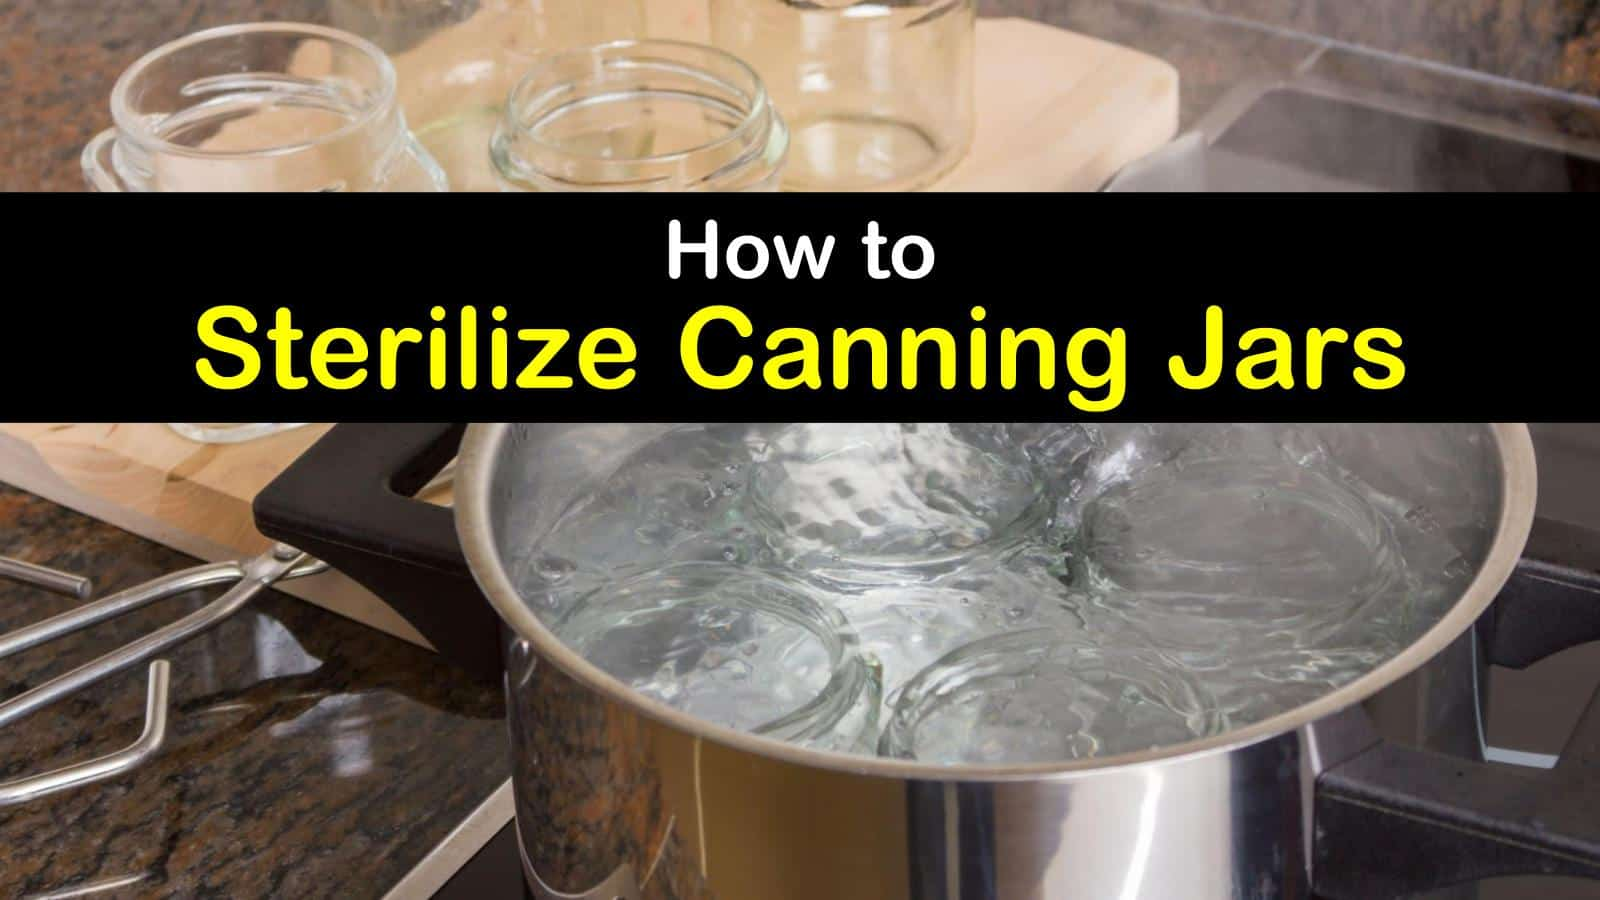 how to sterilize canning jars titleimg1